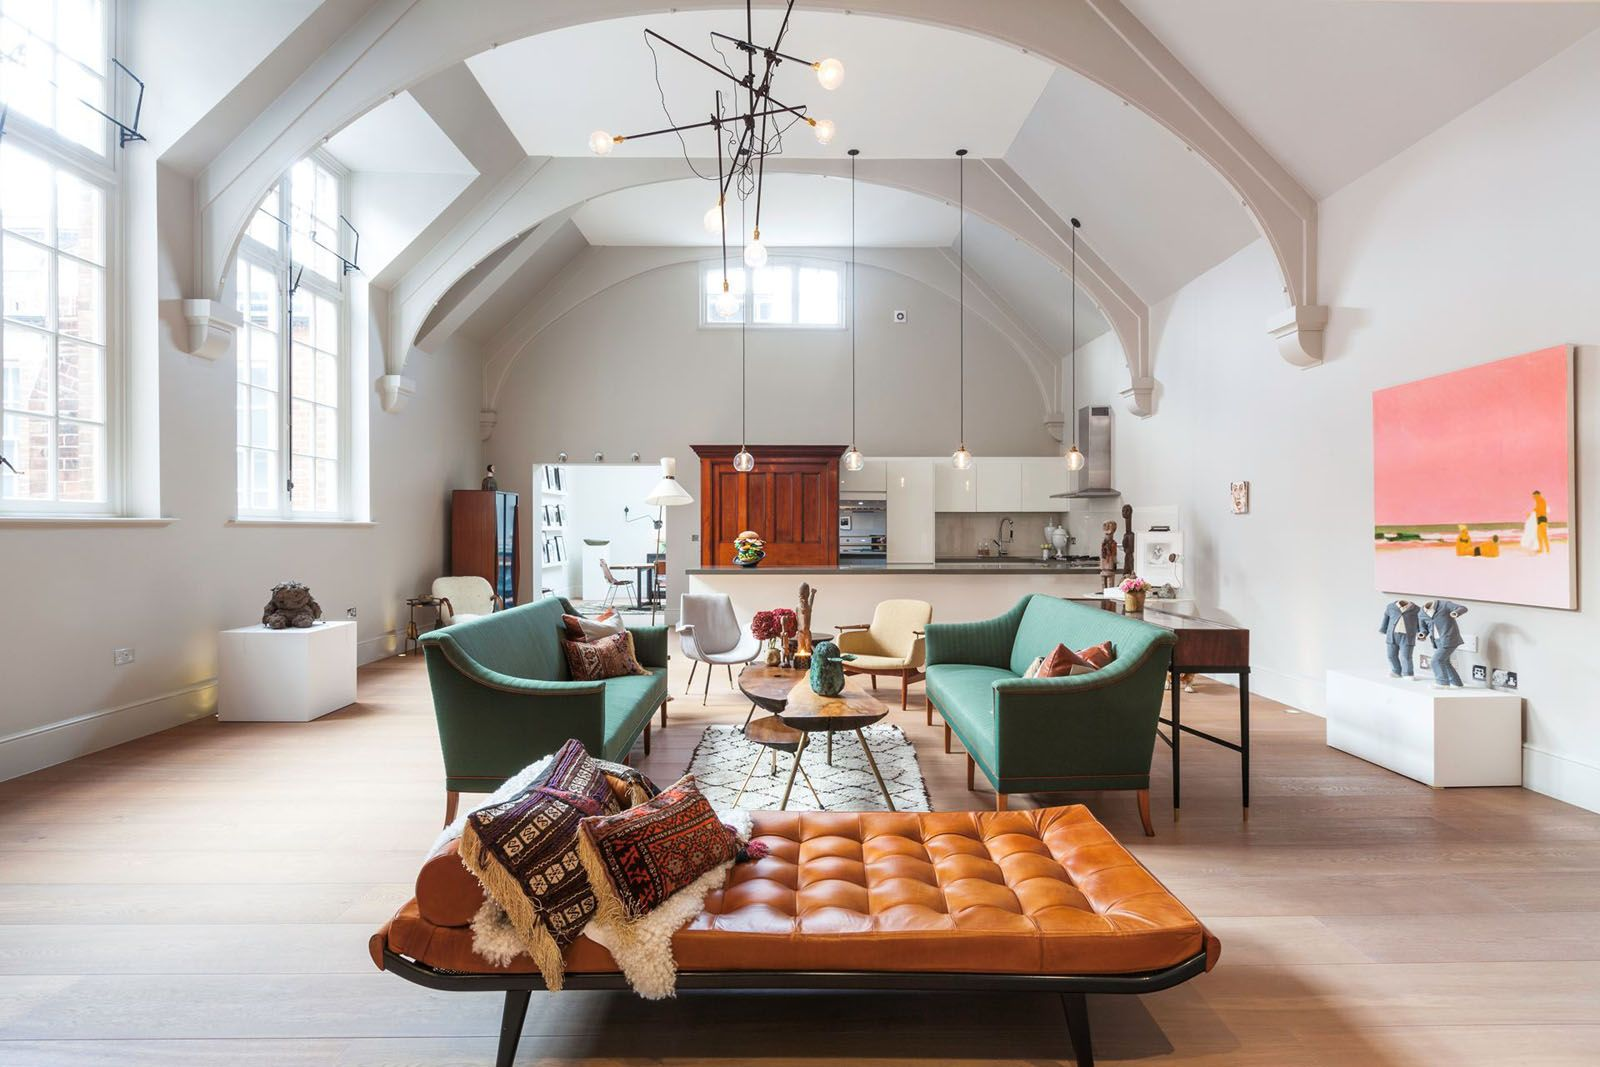 1900s Courthouse With Dramatic Vaulted Ceiling Transformed Into